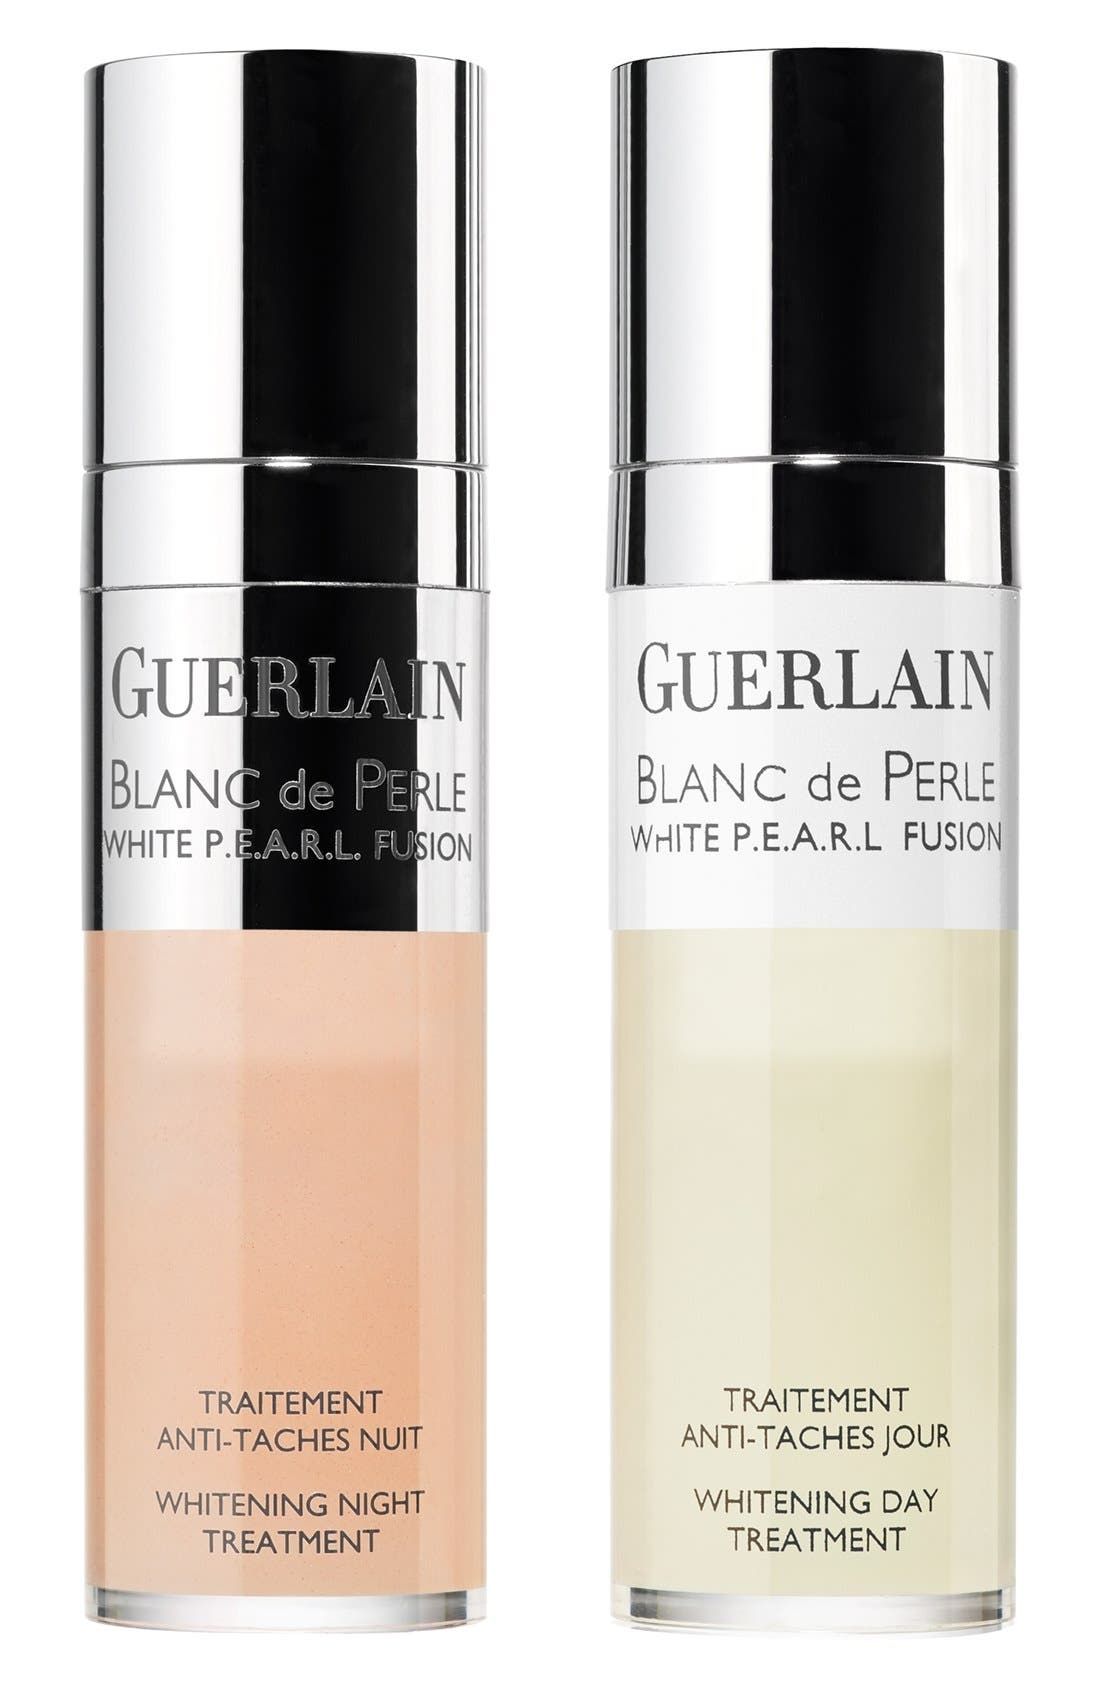 Guerlain 'Blanc de Perle' White P.E.A.R.L. Day & Night Whitening Treatment